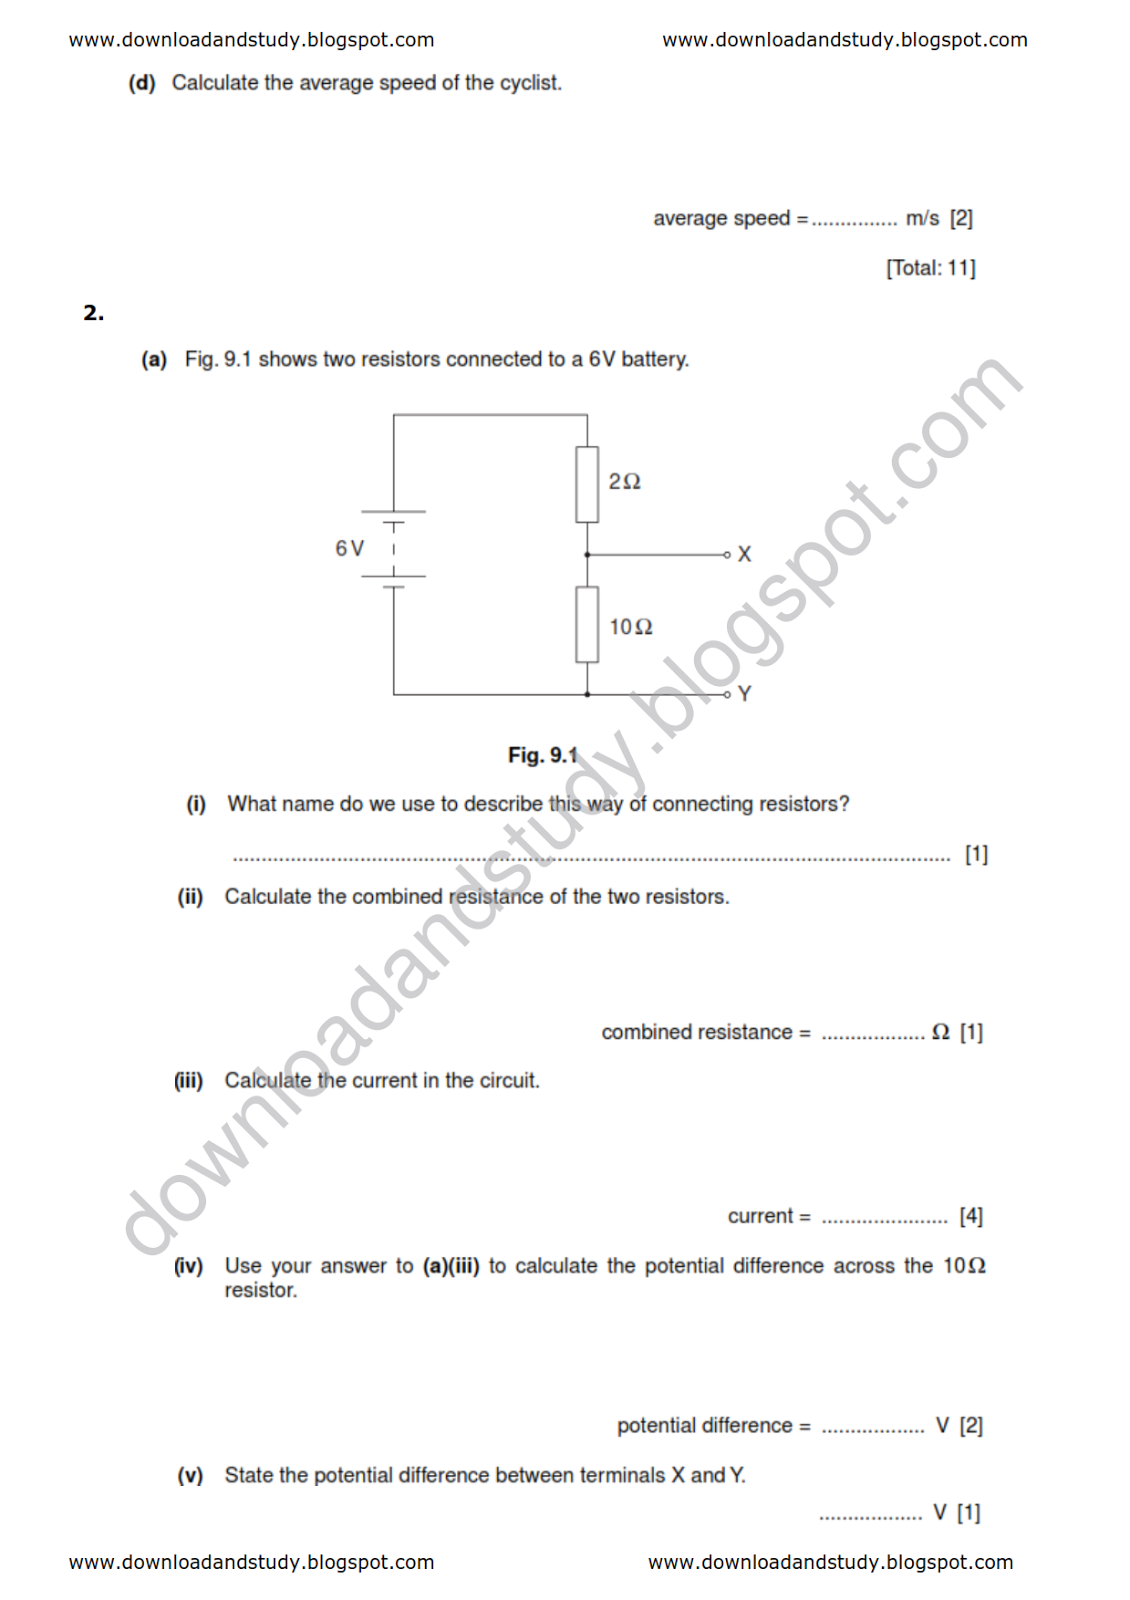 Download Amp Study Igcse Physics Test Worksheet